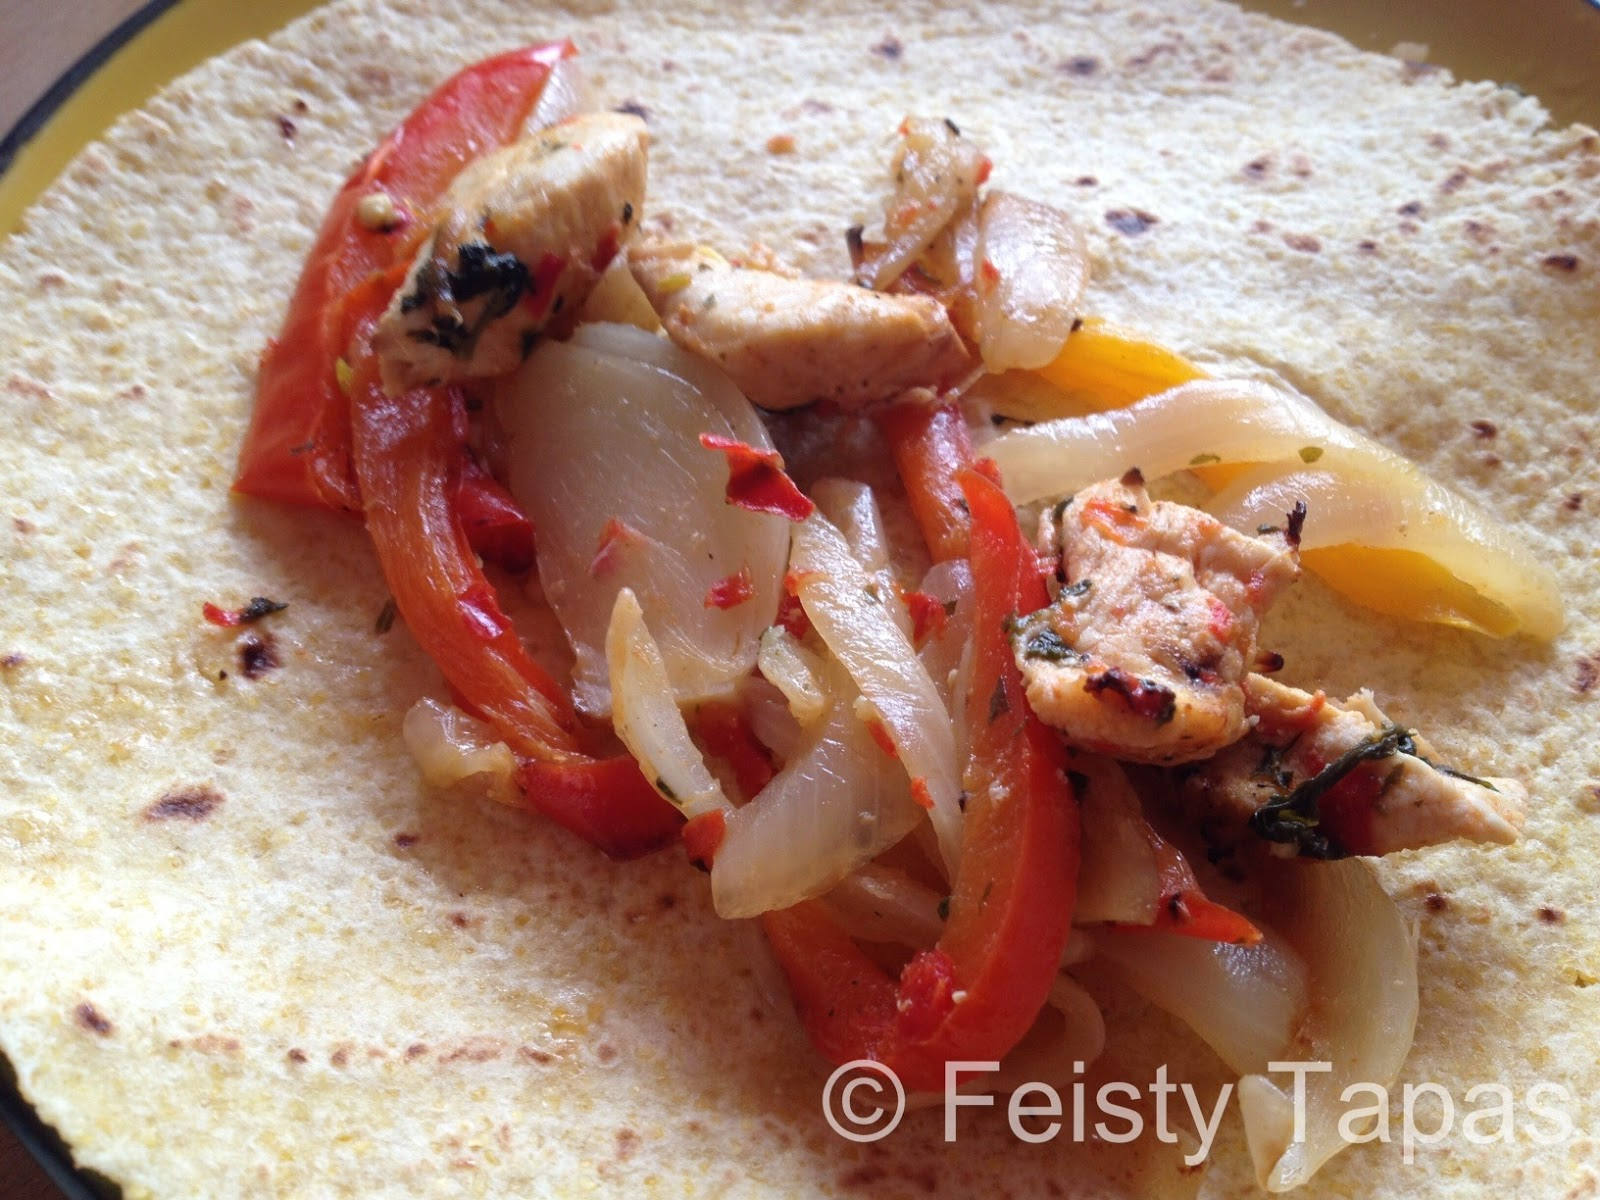 Feisty tapas thermomix recipe chicken fajitas with the help of the recipe chicken fajitas with the help of the thermomix food processor blender or forumfinder Choice Image